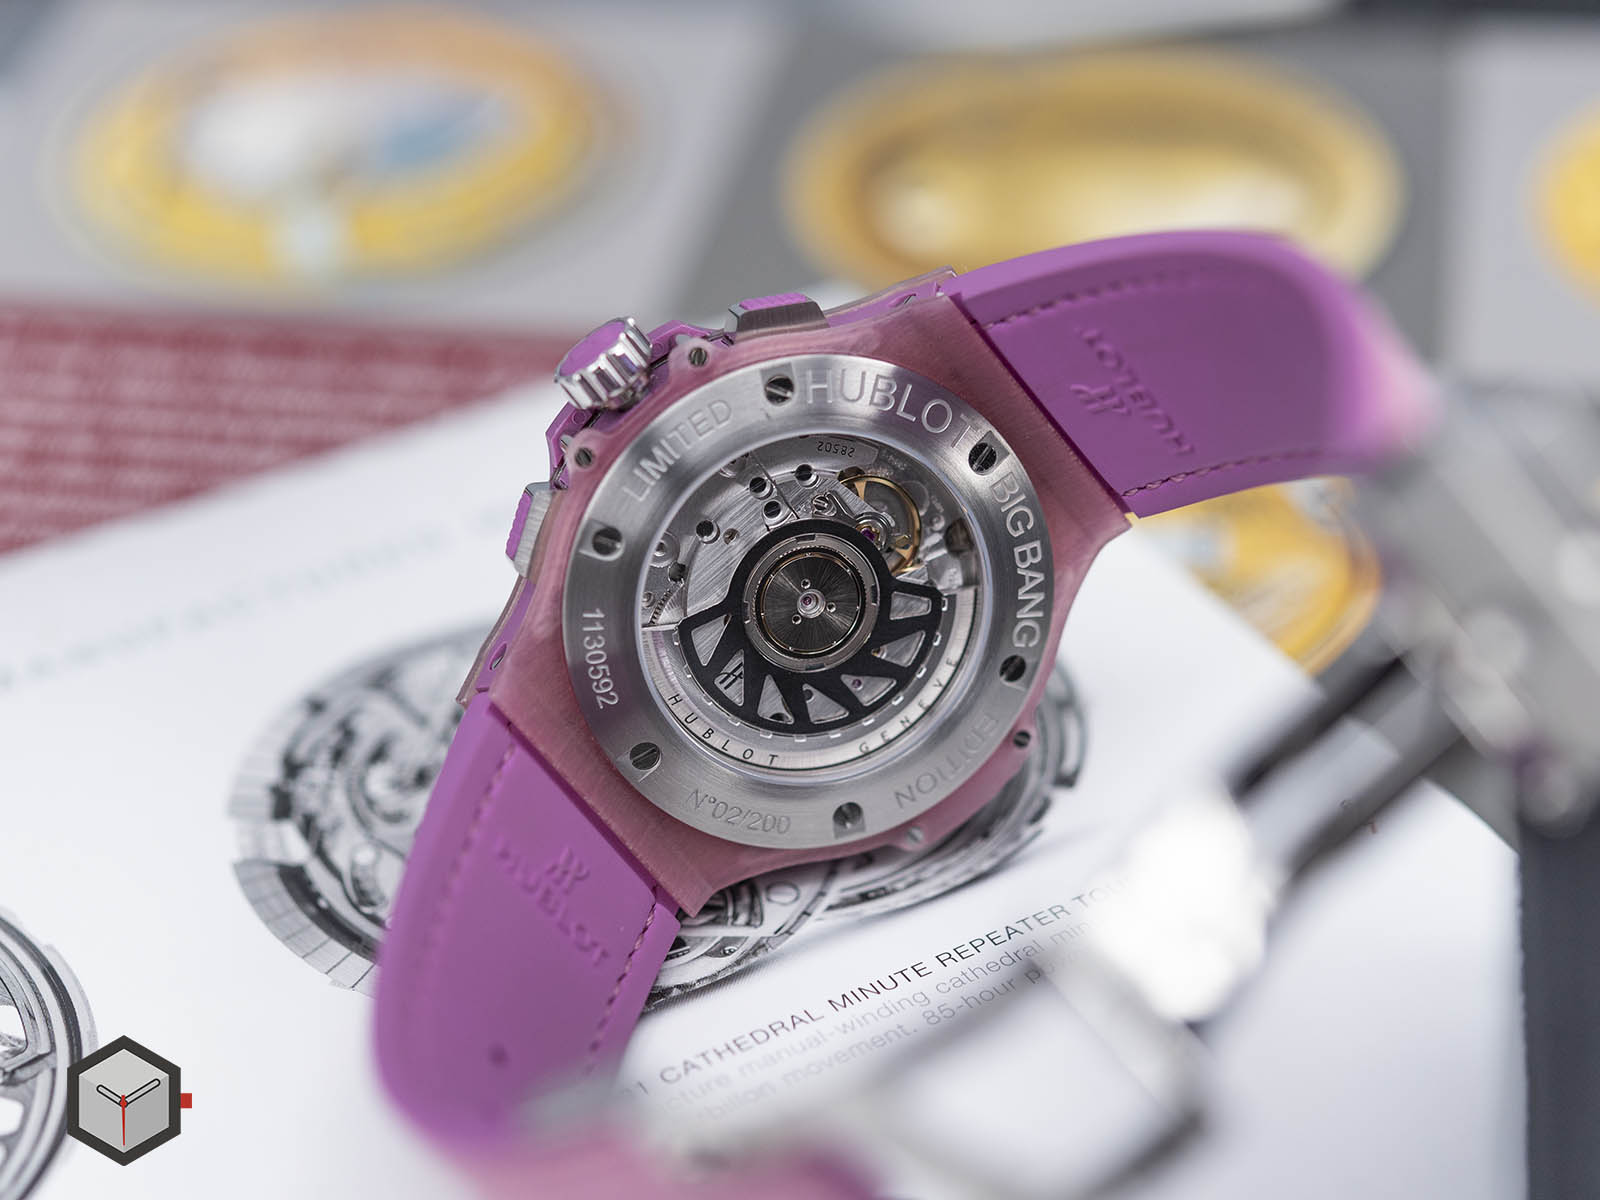 341-xp-2770-nr-1205-hublot-big-bang-purple-linen-8.jpg